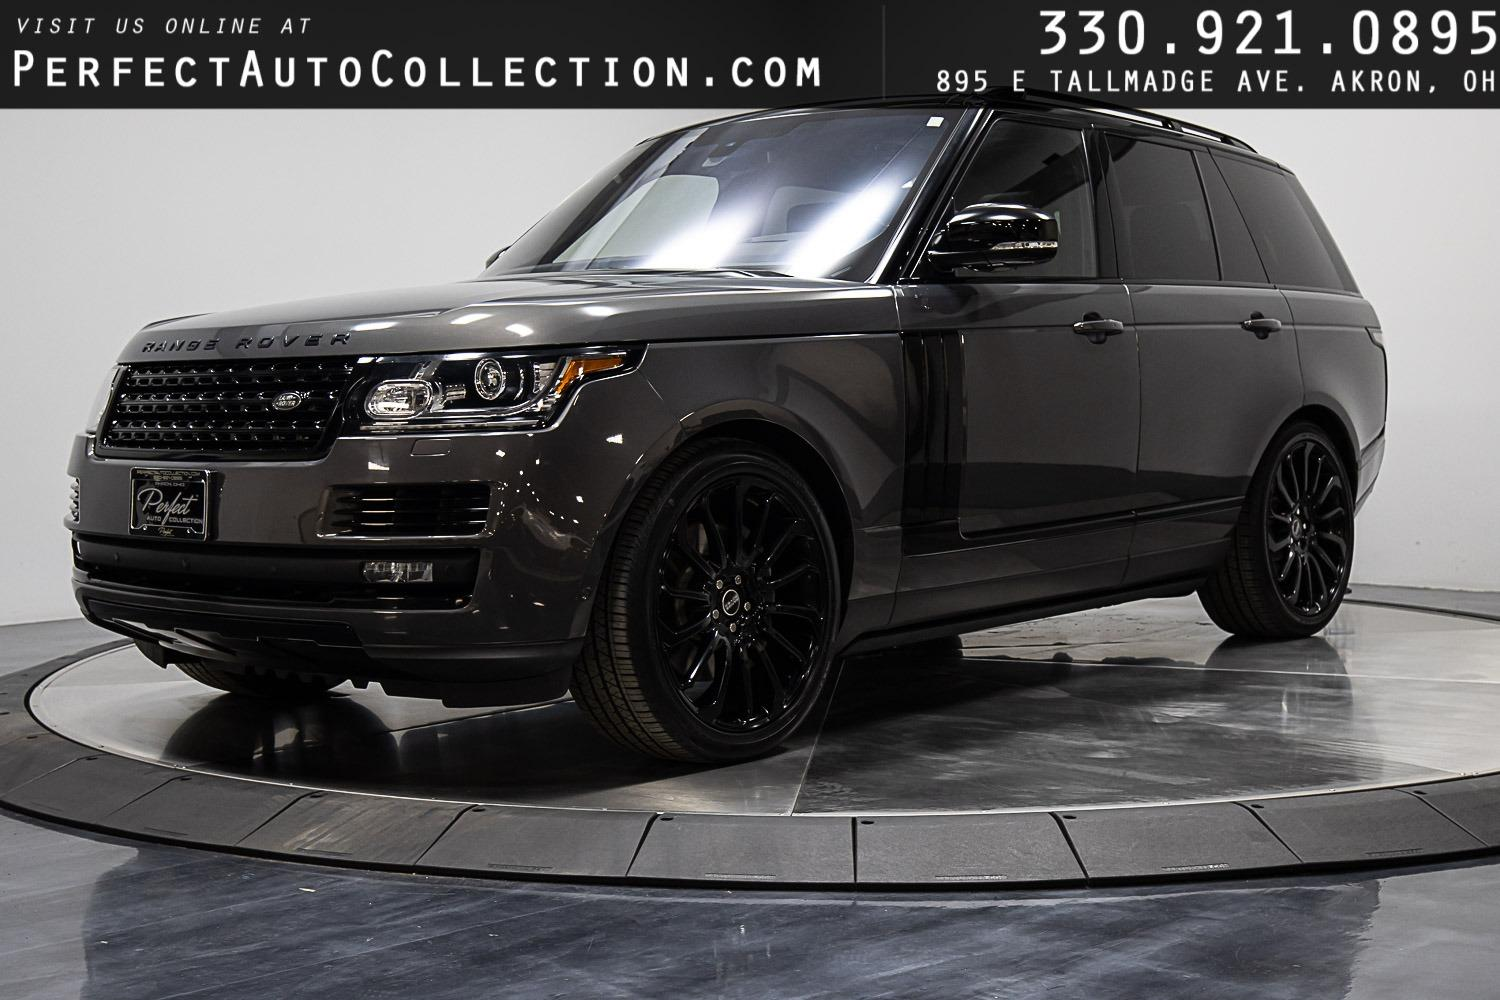 Used 2016 Land Rover Range Rover Supercharged for sale $59,495 at Perfect Auto Collection in Akron OH 44310 1